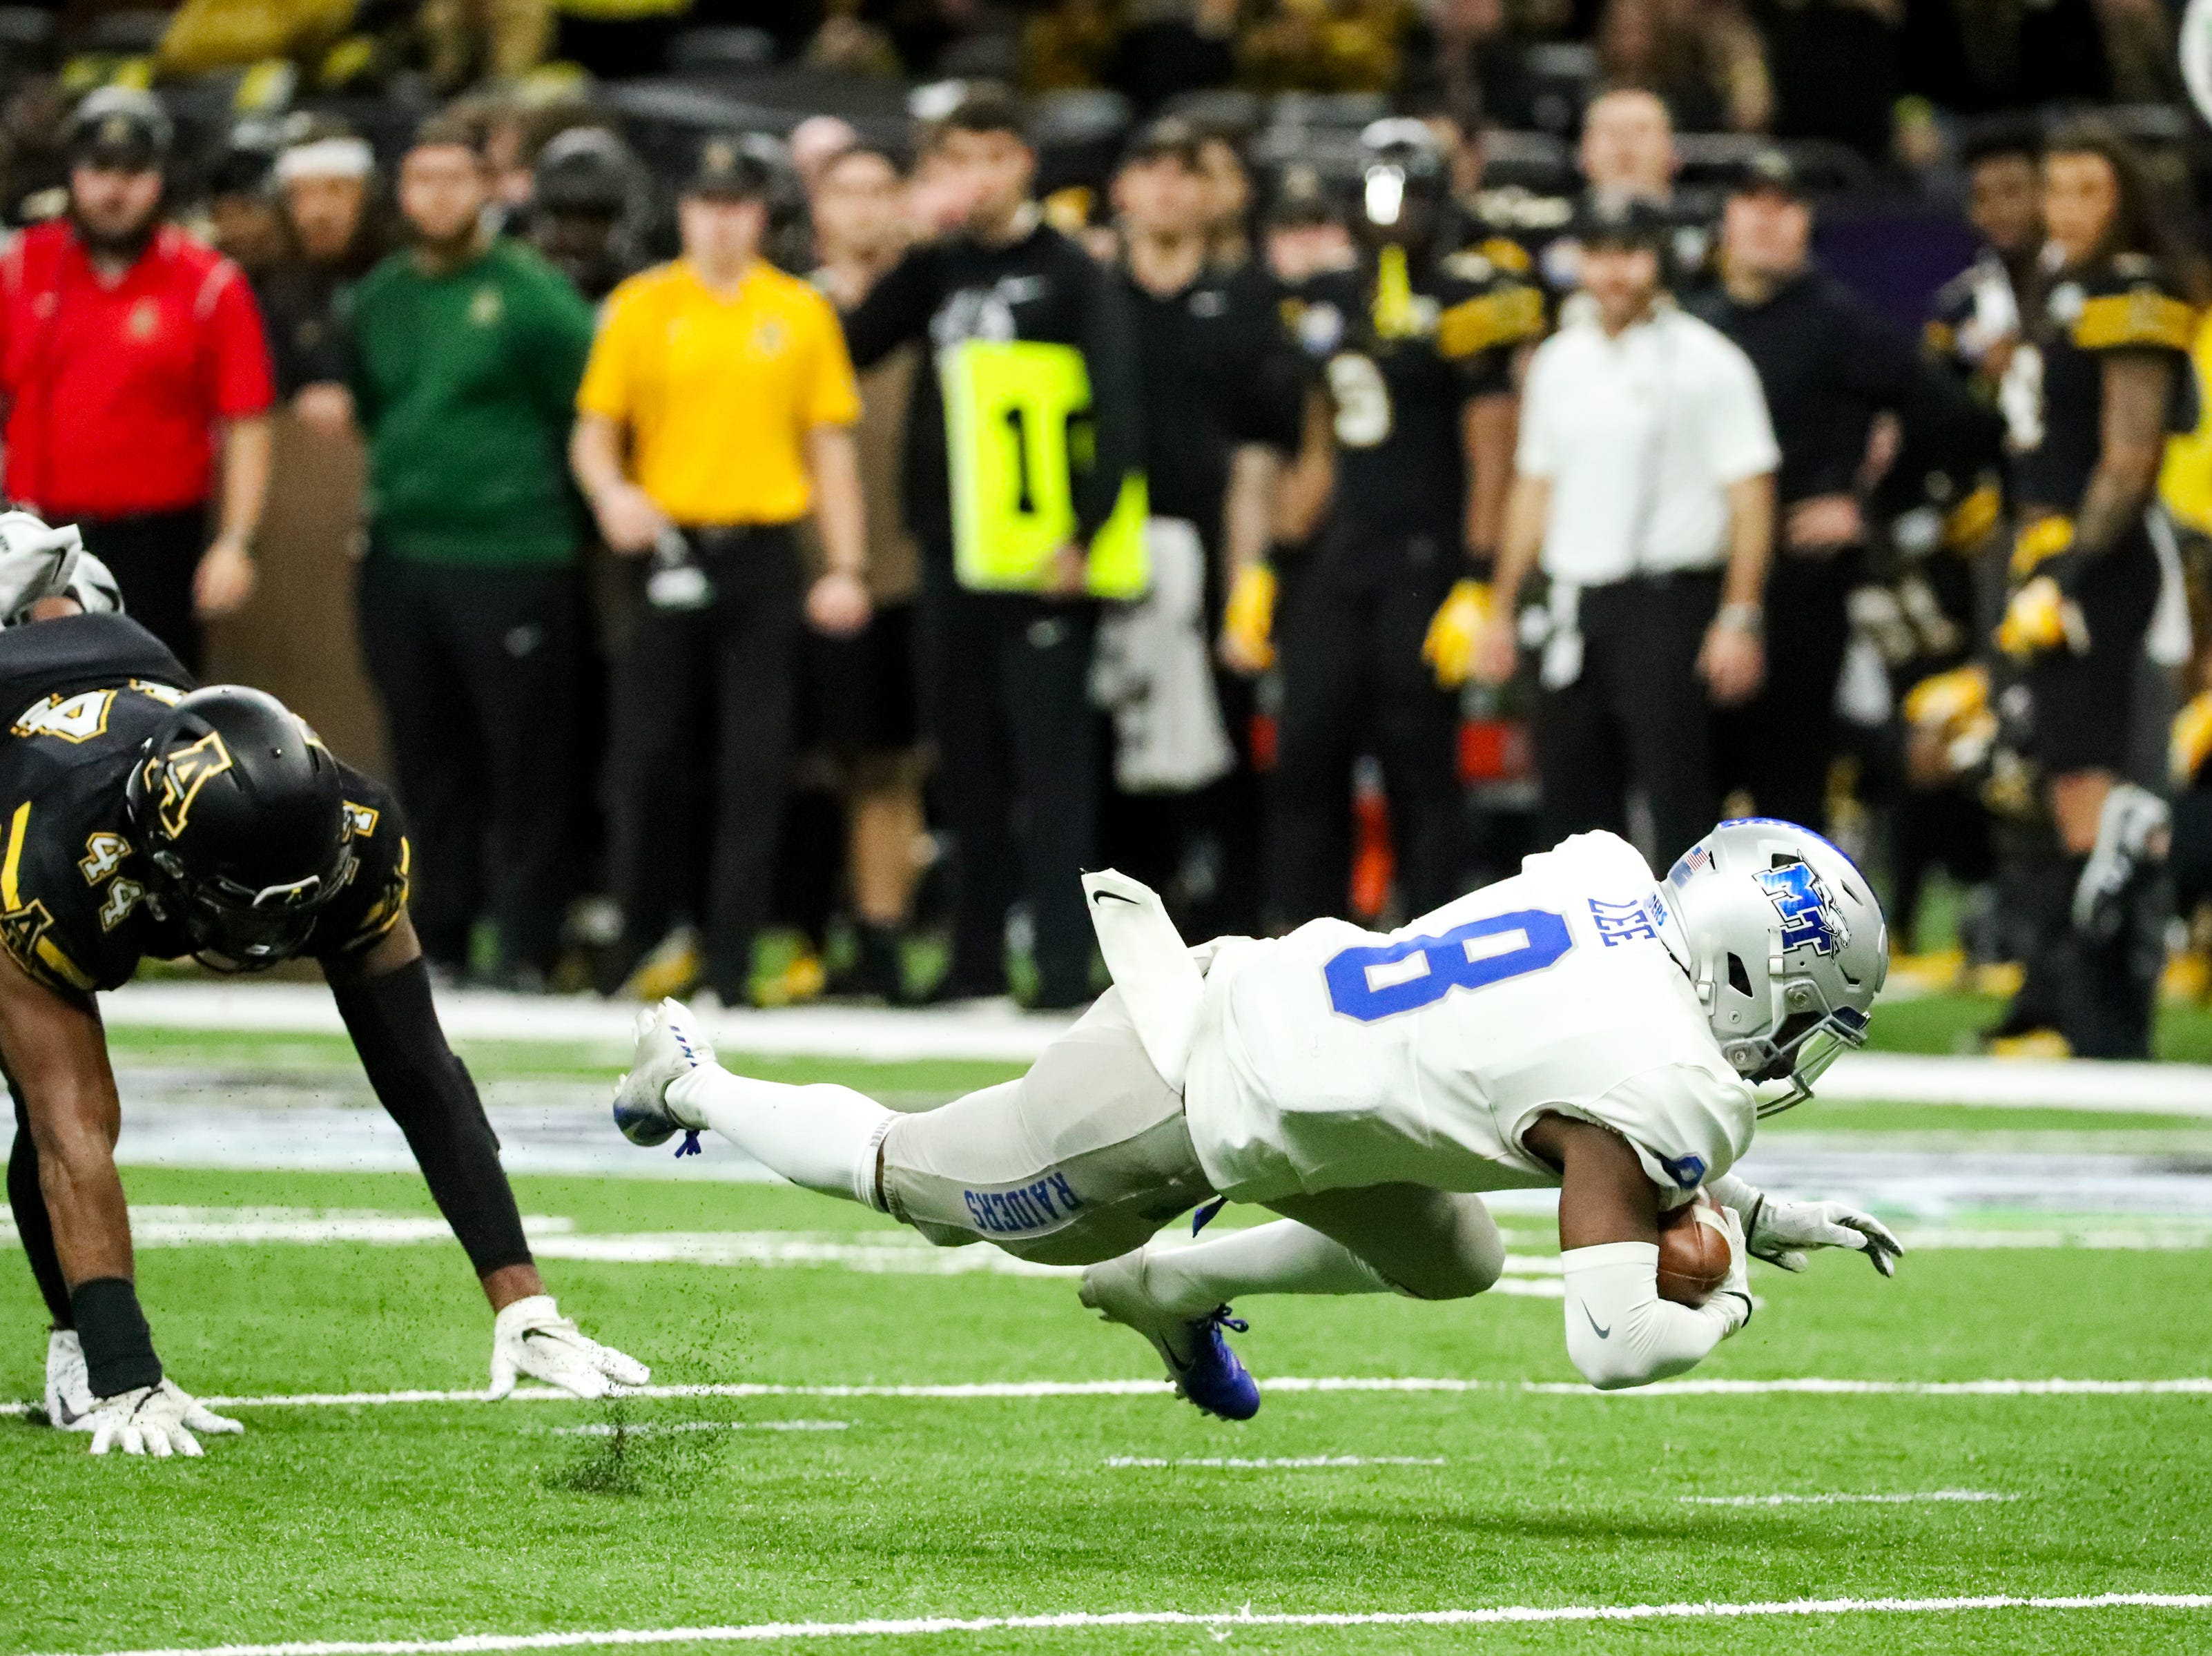 Middle Tennessee Blue Raiders wide receiver Ty Lee (8) makes the catch and runs with the ball during the first half at the Mercedes-Benz Superdome Saturday, Dec. 15, 2018, in New Orleans, La.